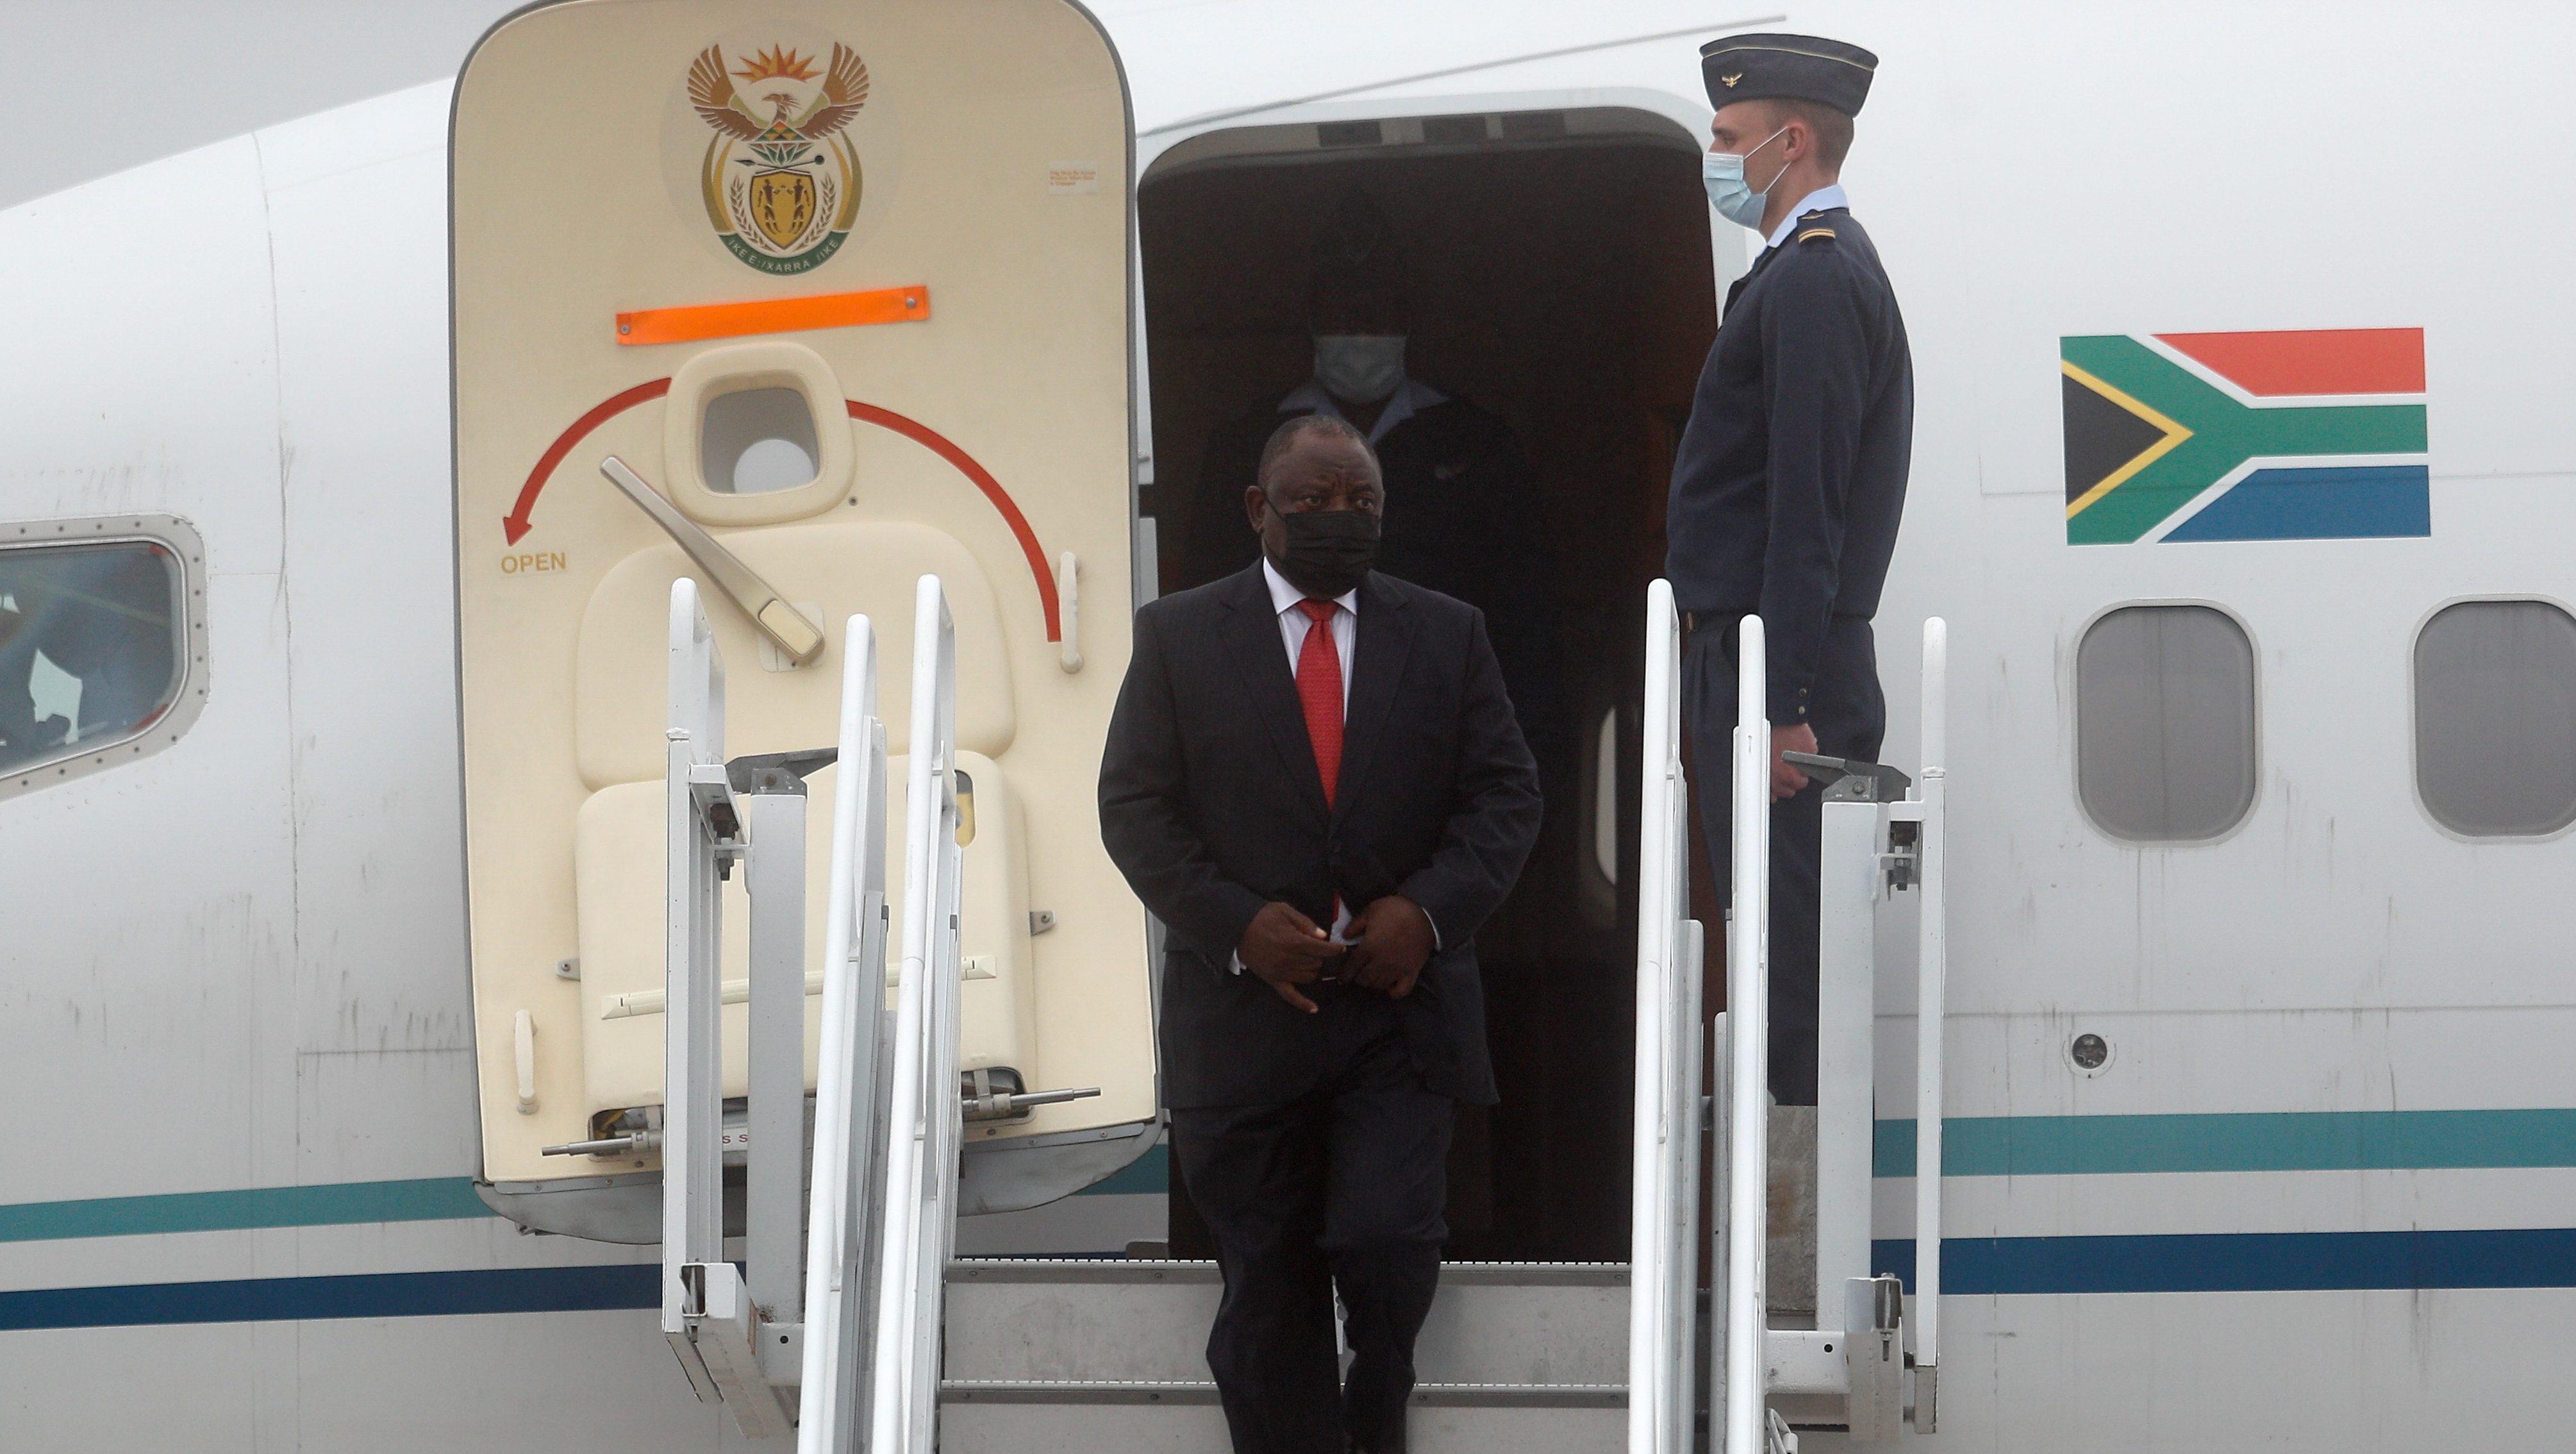 South Africa's President Cyril Ramaphosa arrives in Cornwall for the G7 summit on June 11.